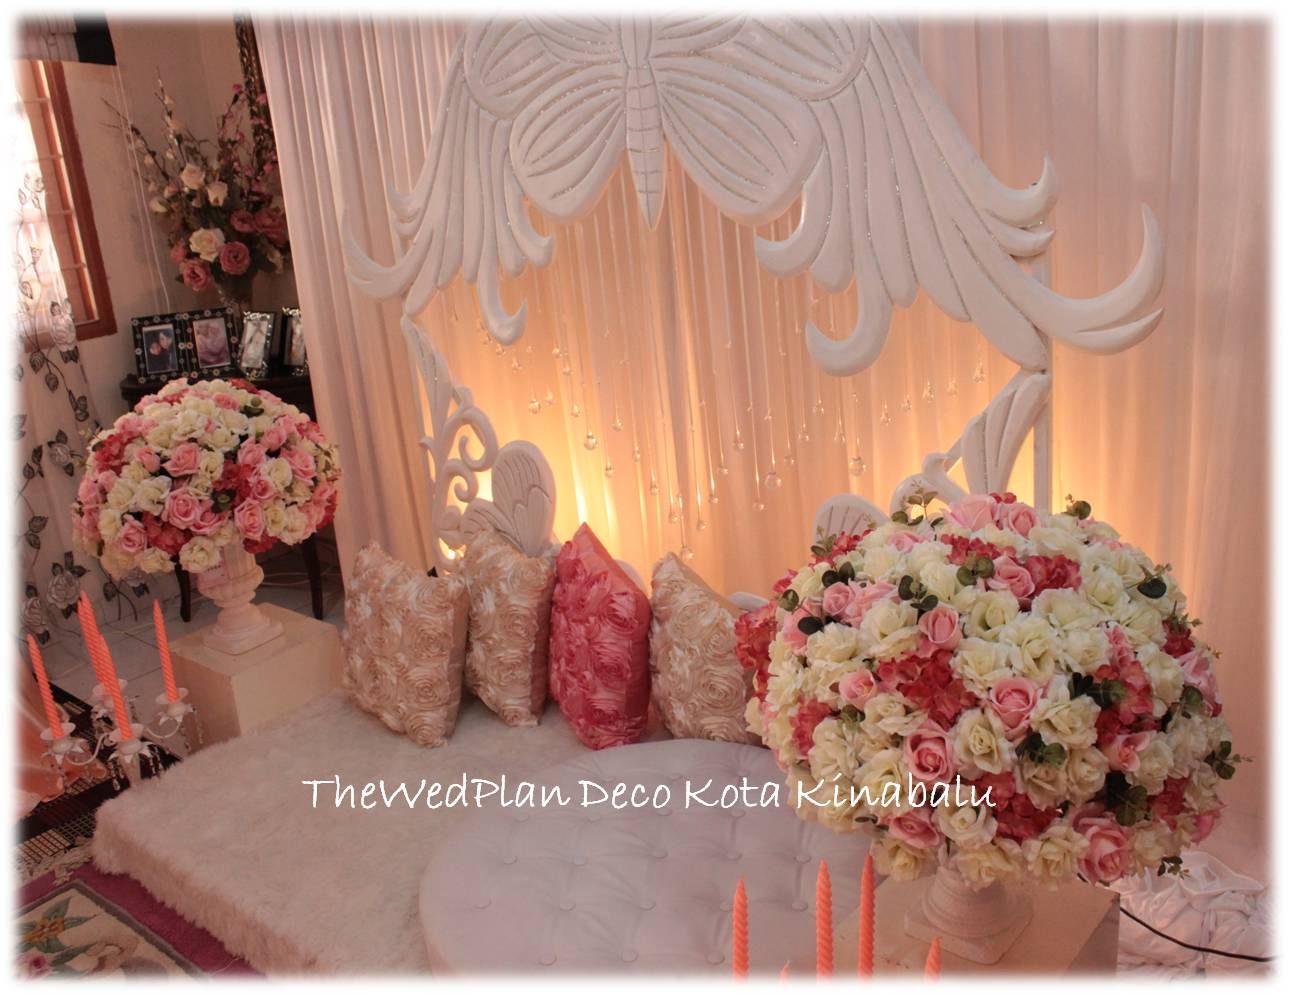 Butterfly Mini Pelamin Thanks Amy And Kak Erna For Hiring Us Looking Forward To Work With U Again Soon XOXO